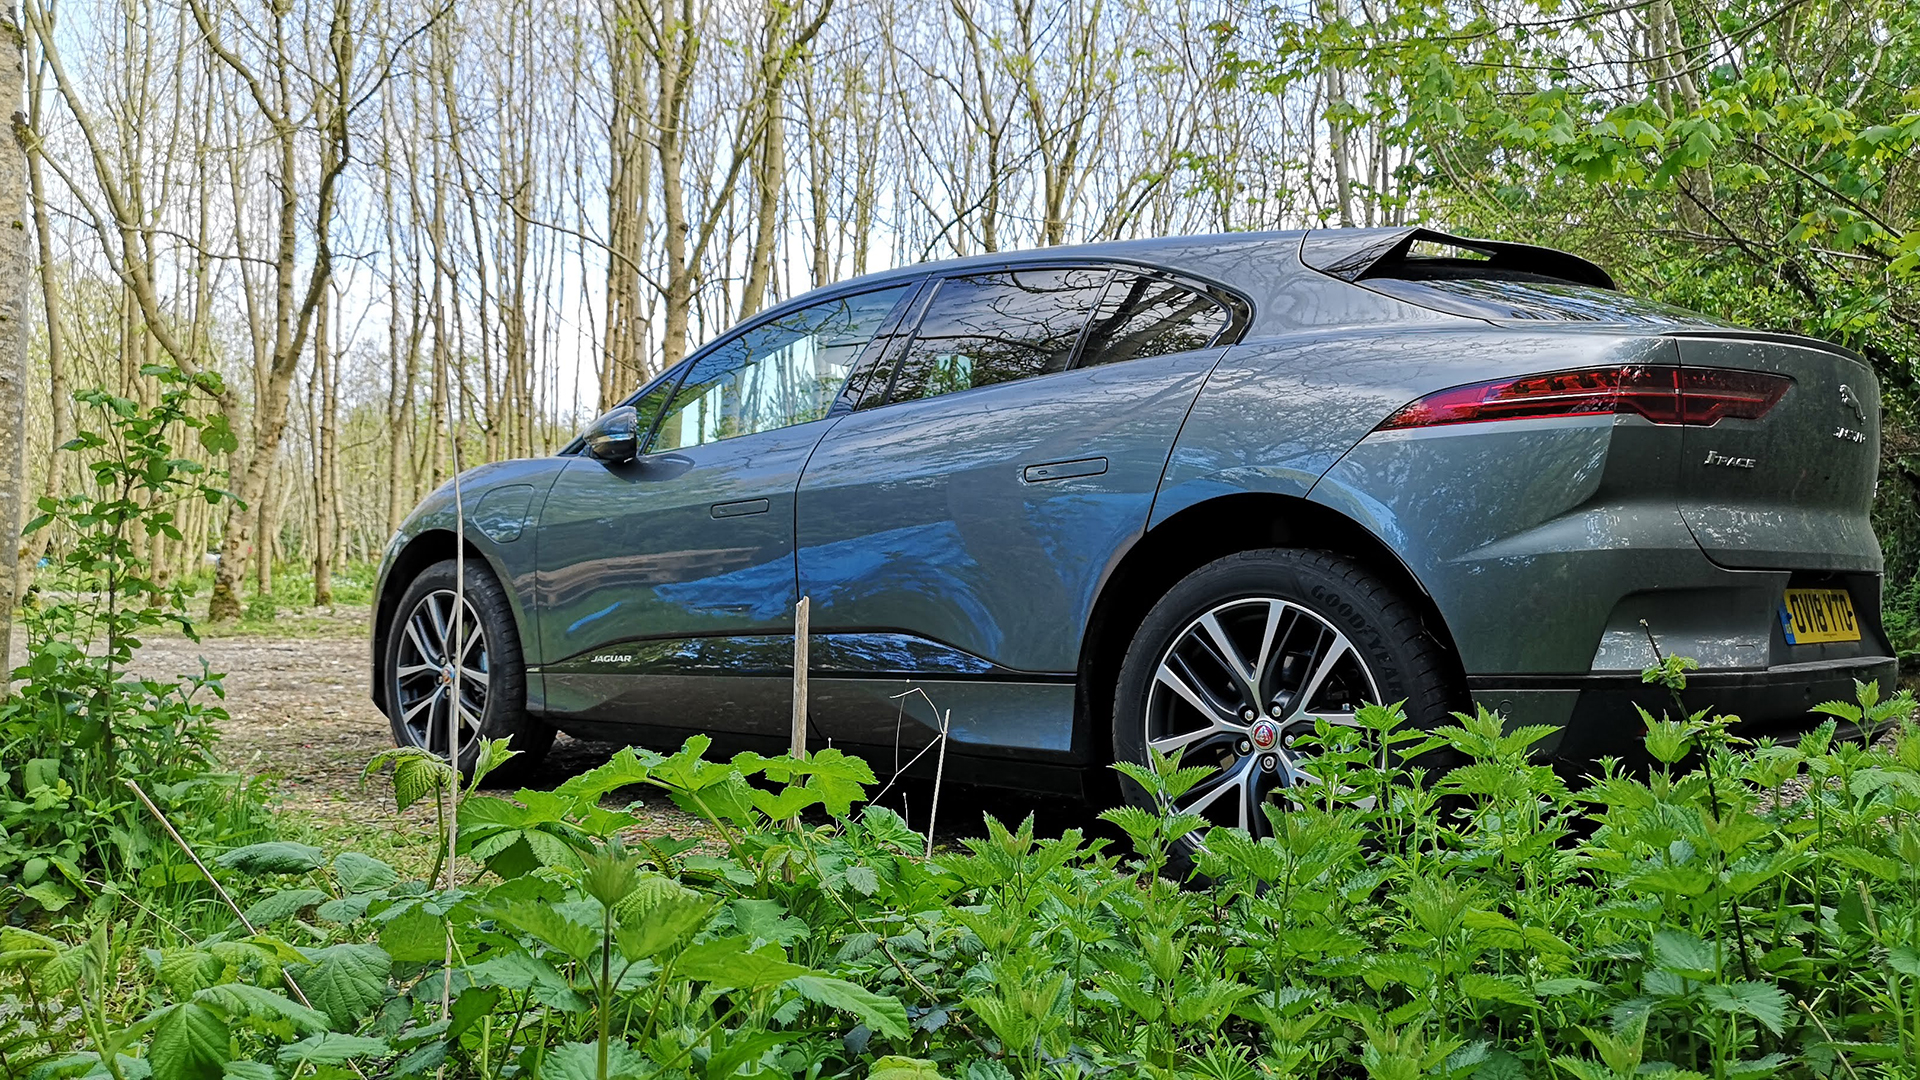 Jaguar I-PACE: pushed Lands End 2icC9AZFyWd3LmFvYm5j